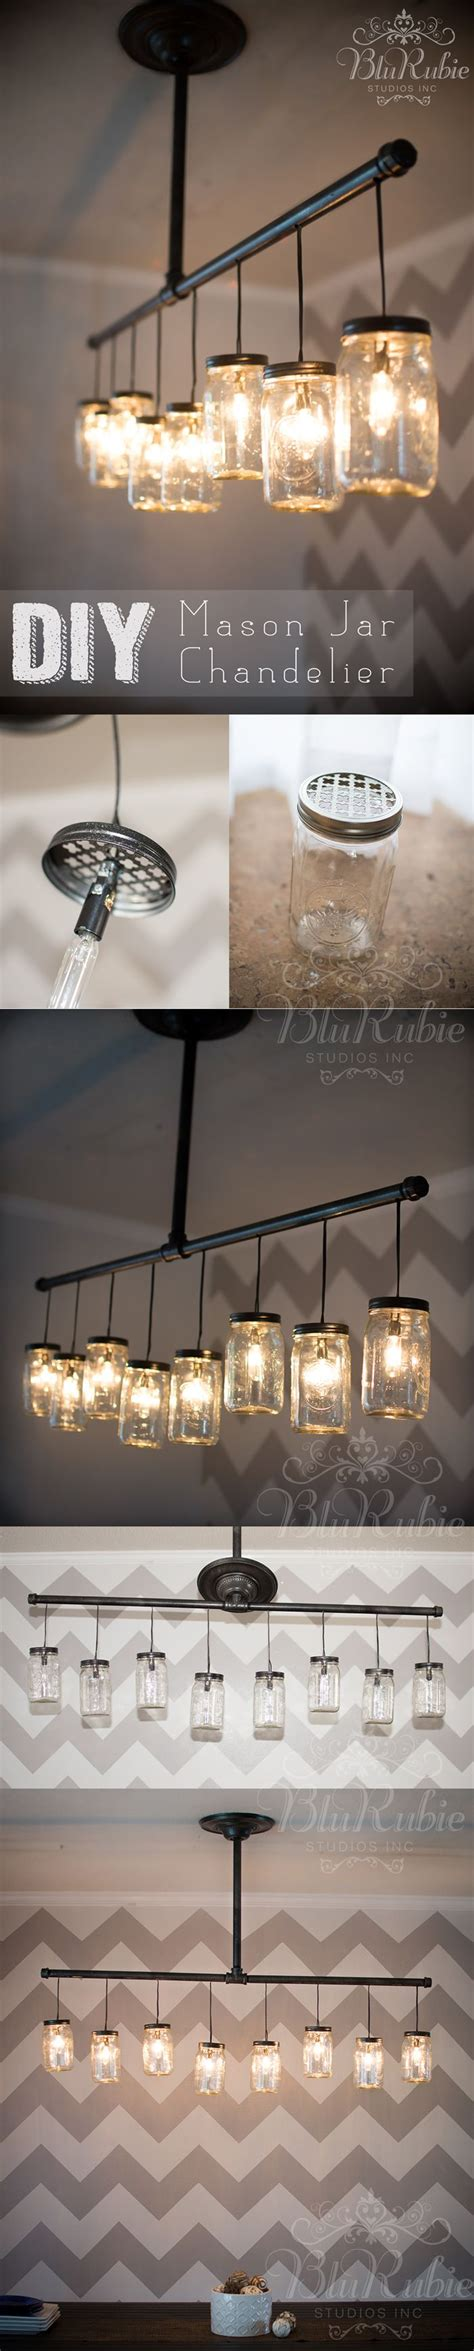 diy rustic light fixtures 17 best images about project kitchen 2015 lighting on